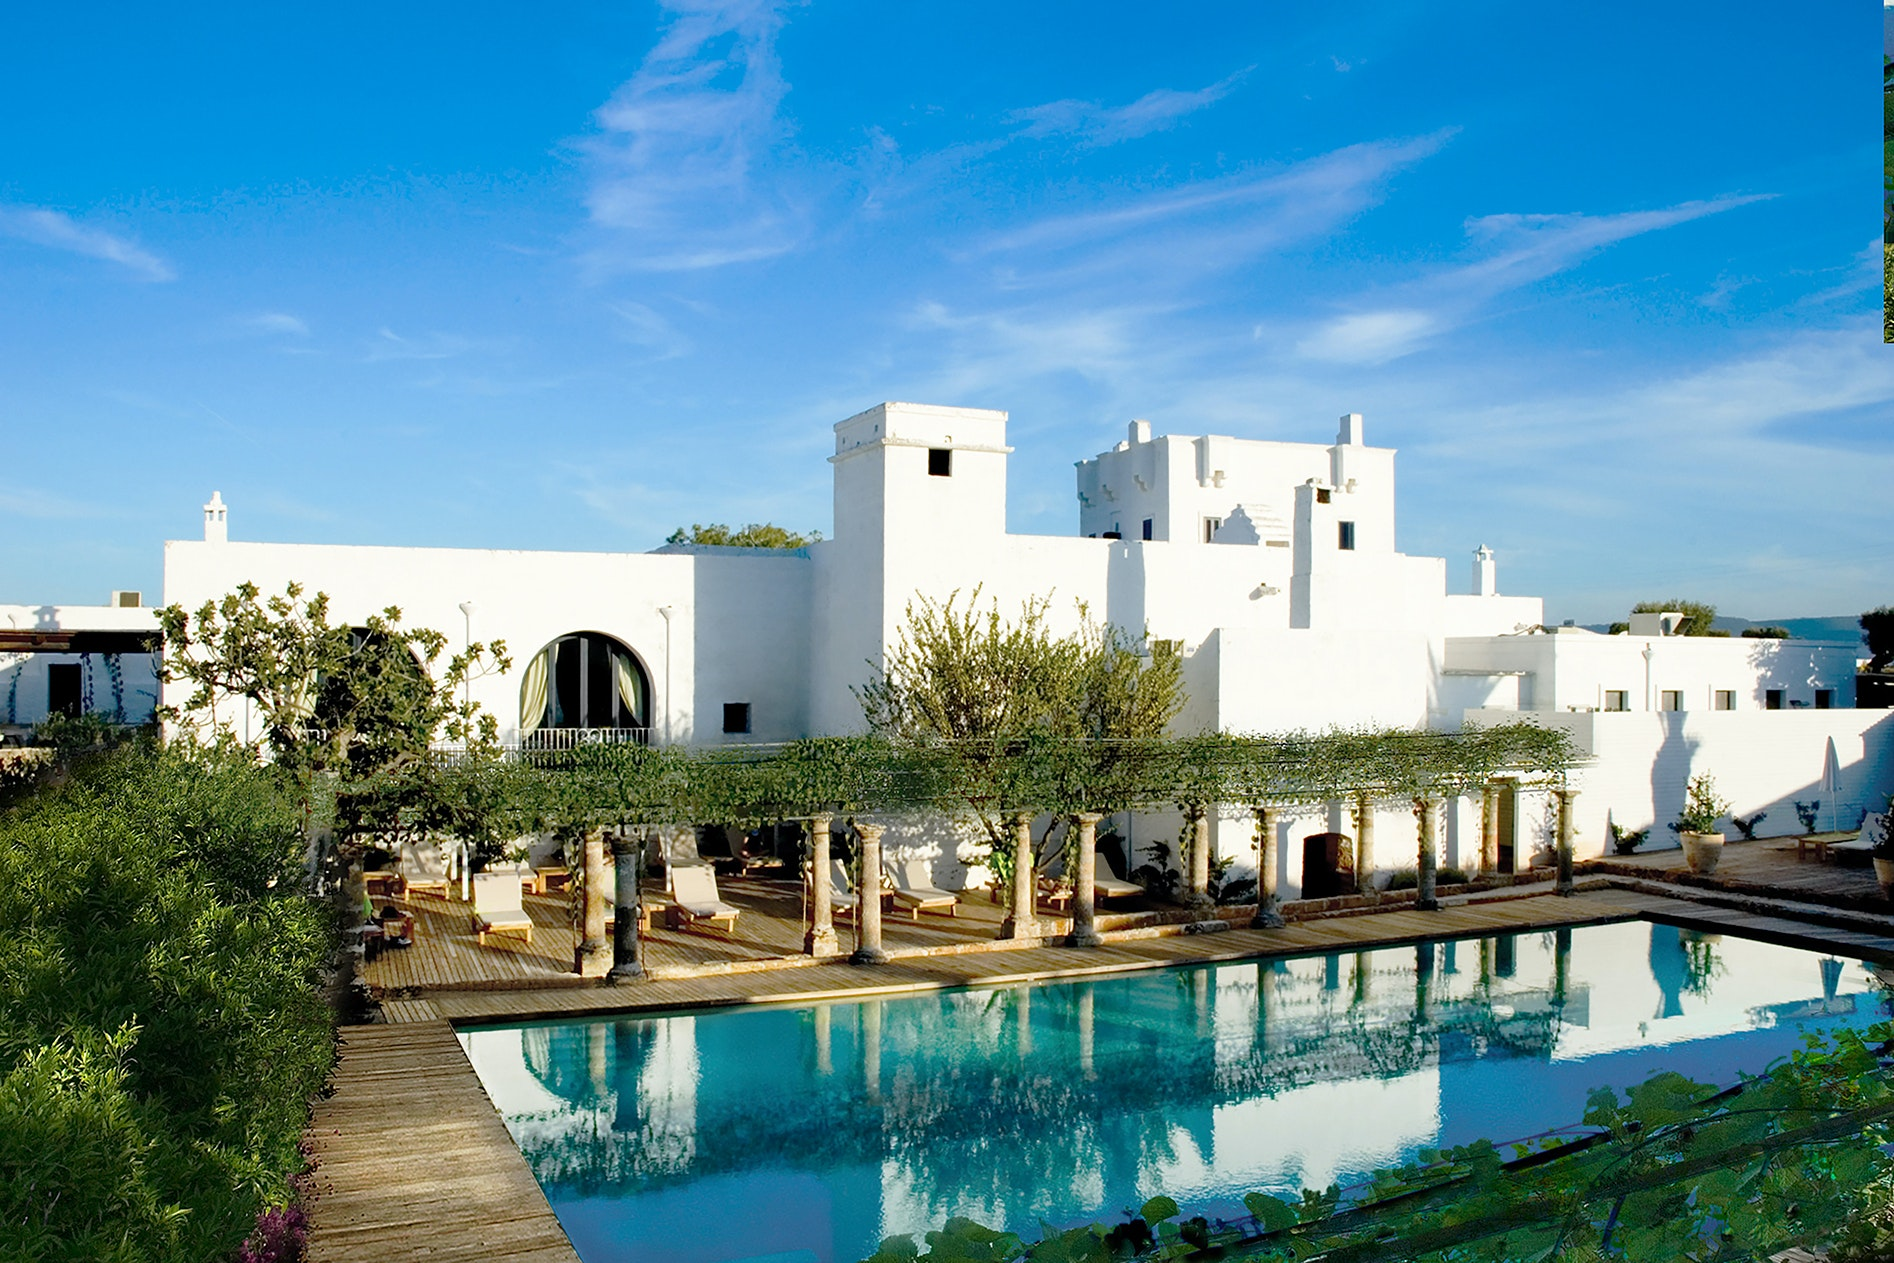 Next spring, Rocco Forte is opening Masseria Torre Maizza in a restored olive mill.